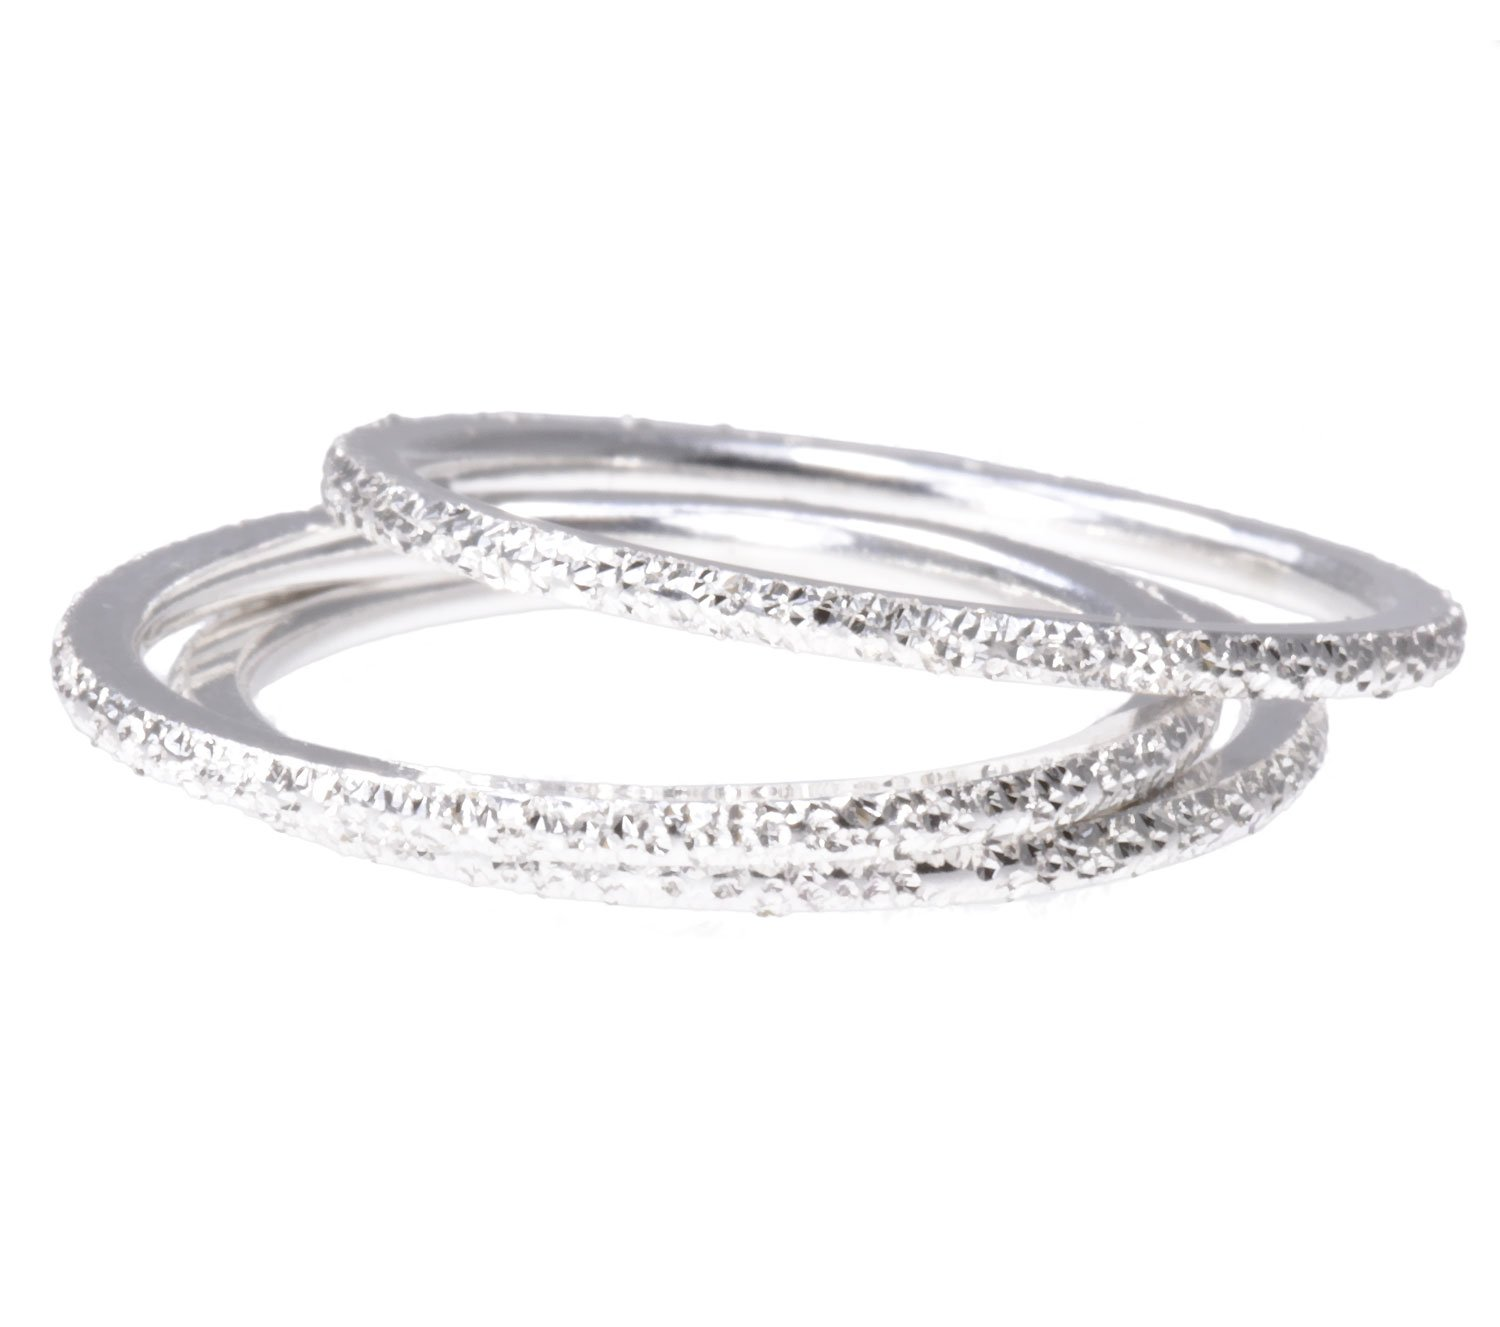 3 Sterling Silver Stardust Stacking Companion 1.2mm Rings Size 5.5